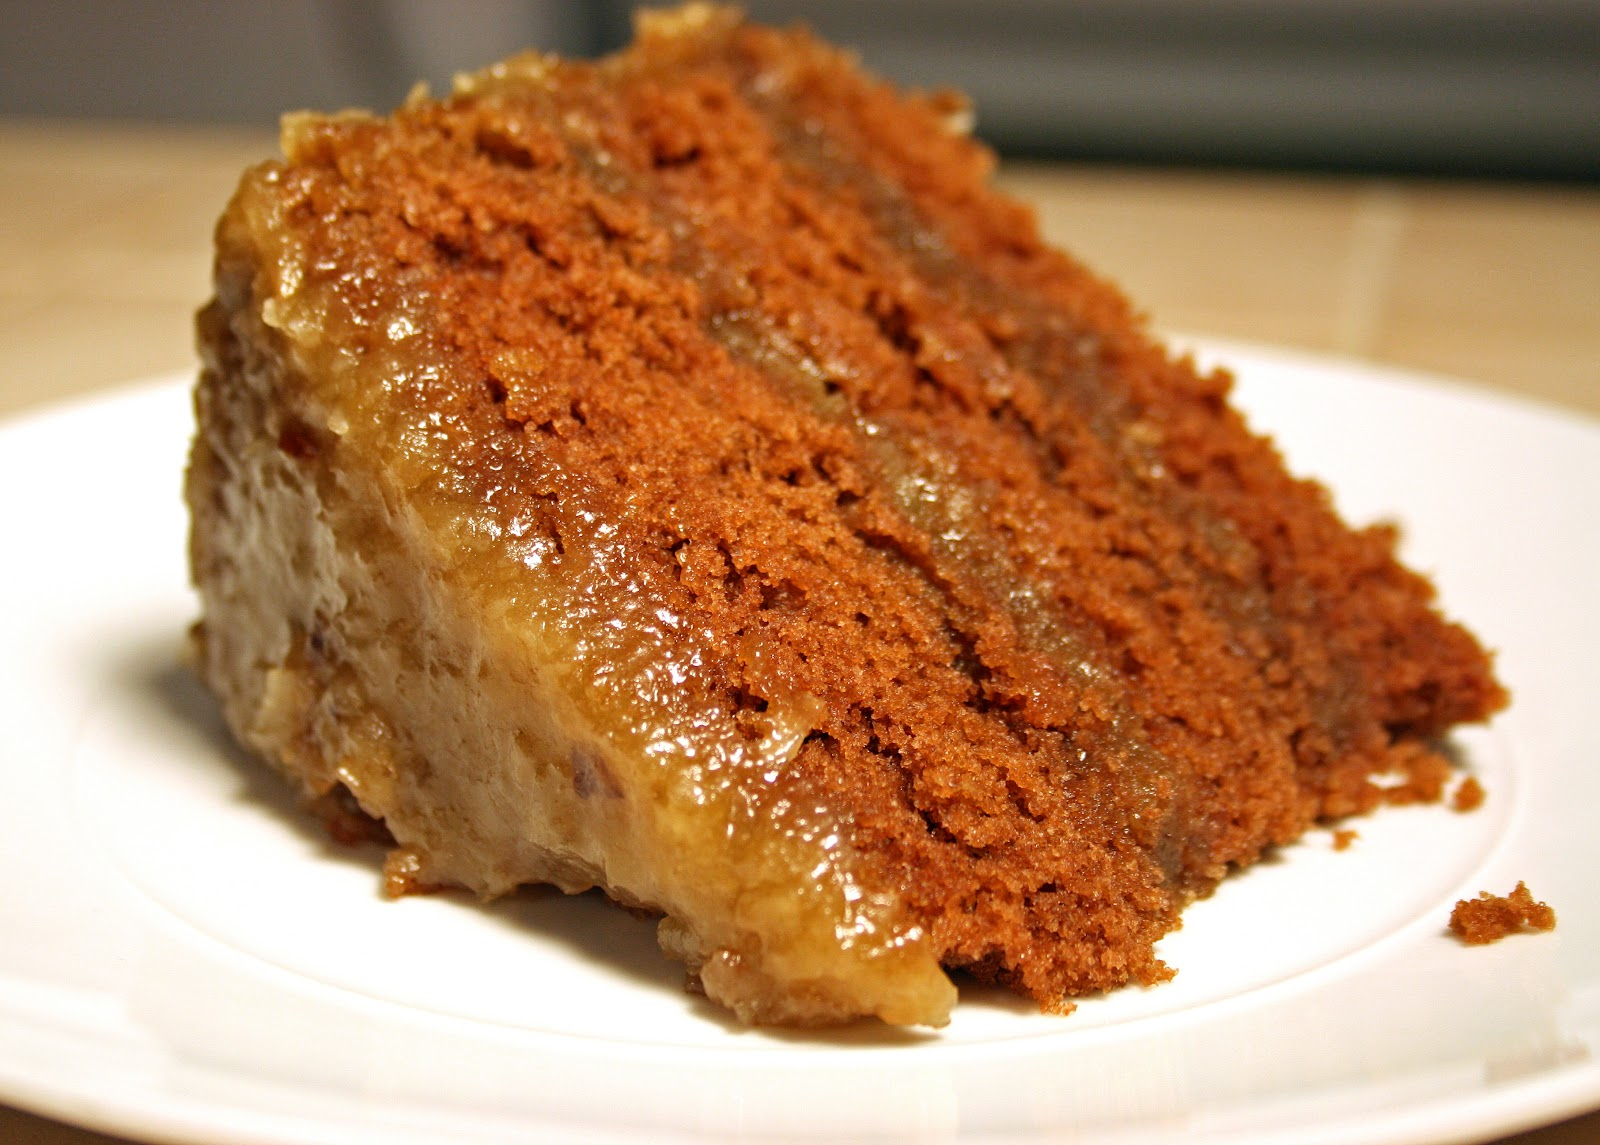 Lazy Gluten Free: Gluten Free German Chocolate Cake